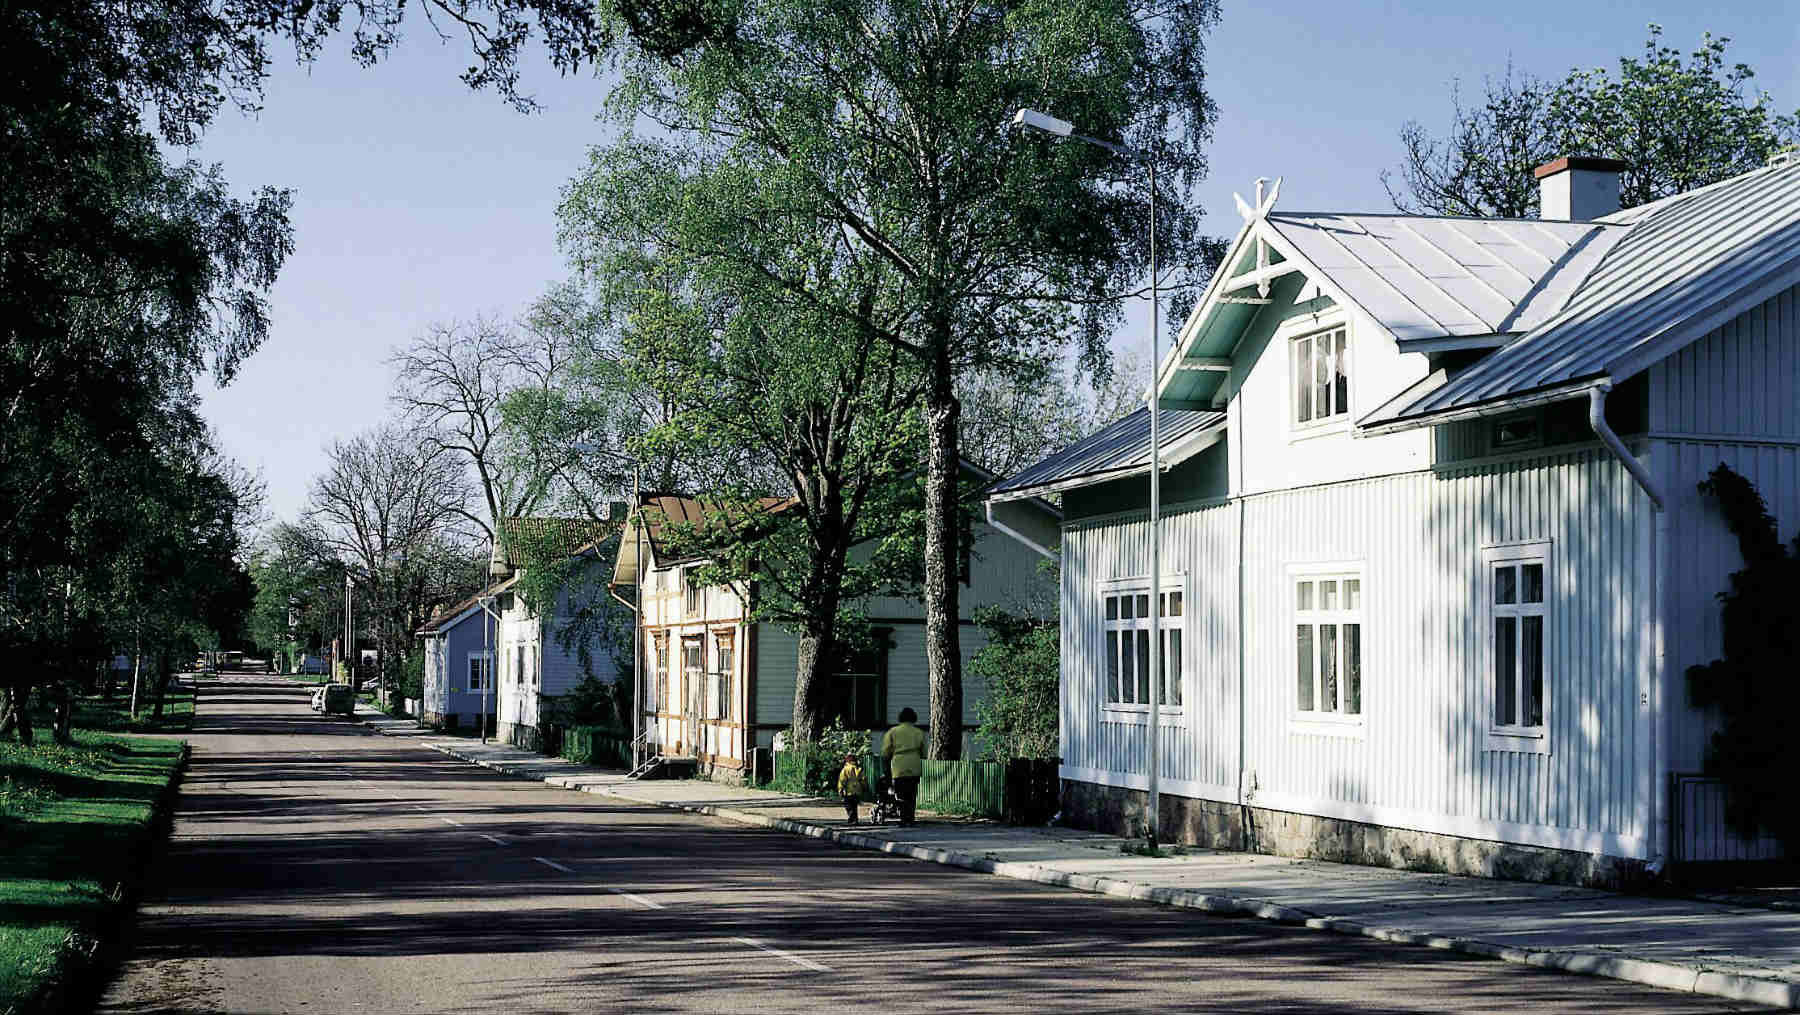 Street in Mariehamn, Aland islands. Photo by Visit Finland